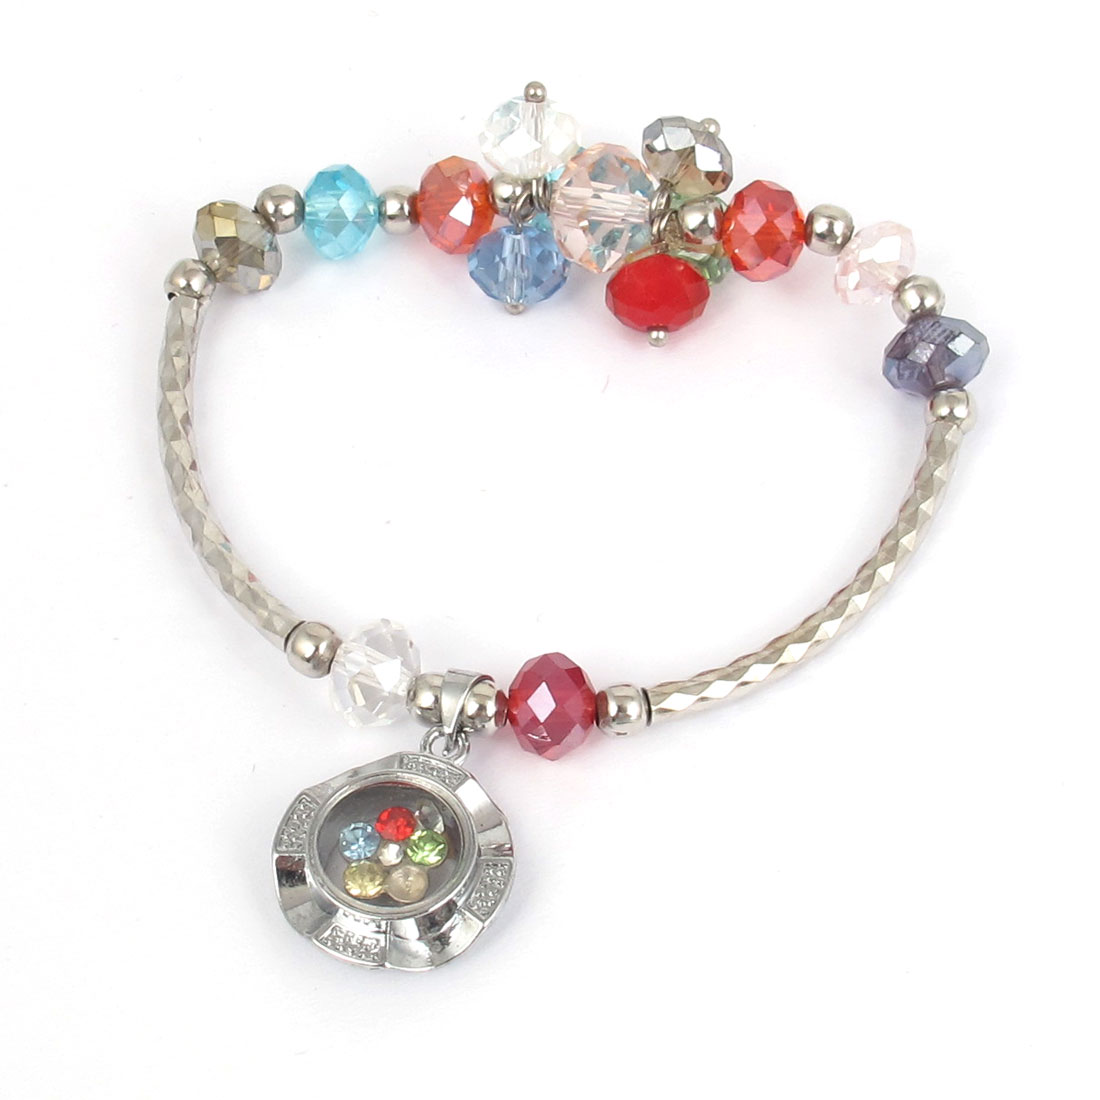 Plastic Faux Faceted Crystal Beads Lucky Pendant Elastic Wrist Ornament Bangle Bracelet Multicolor